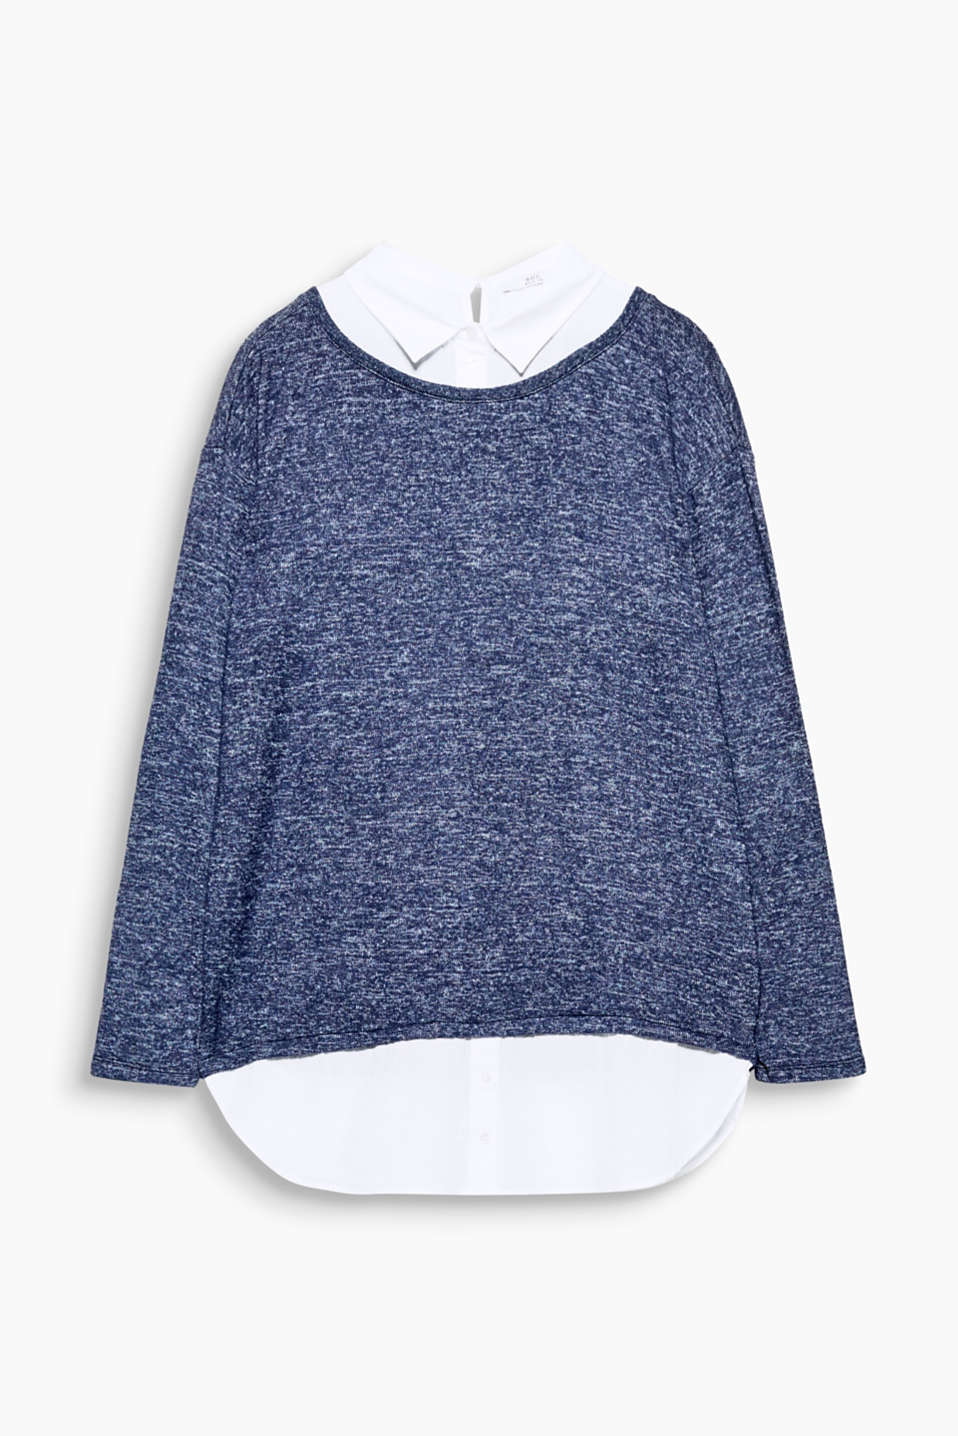 You are always well-dressed in this long sleeve top with a shirt collar and hem made of cloth.